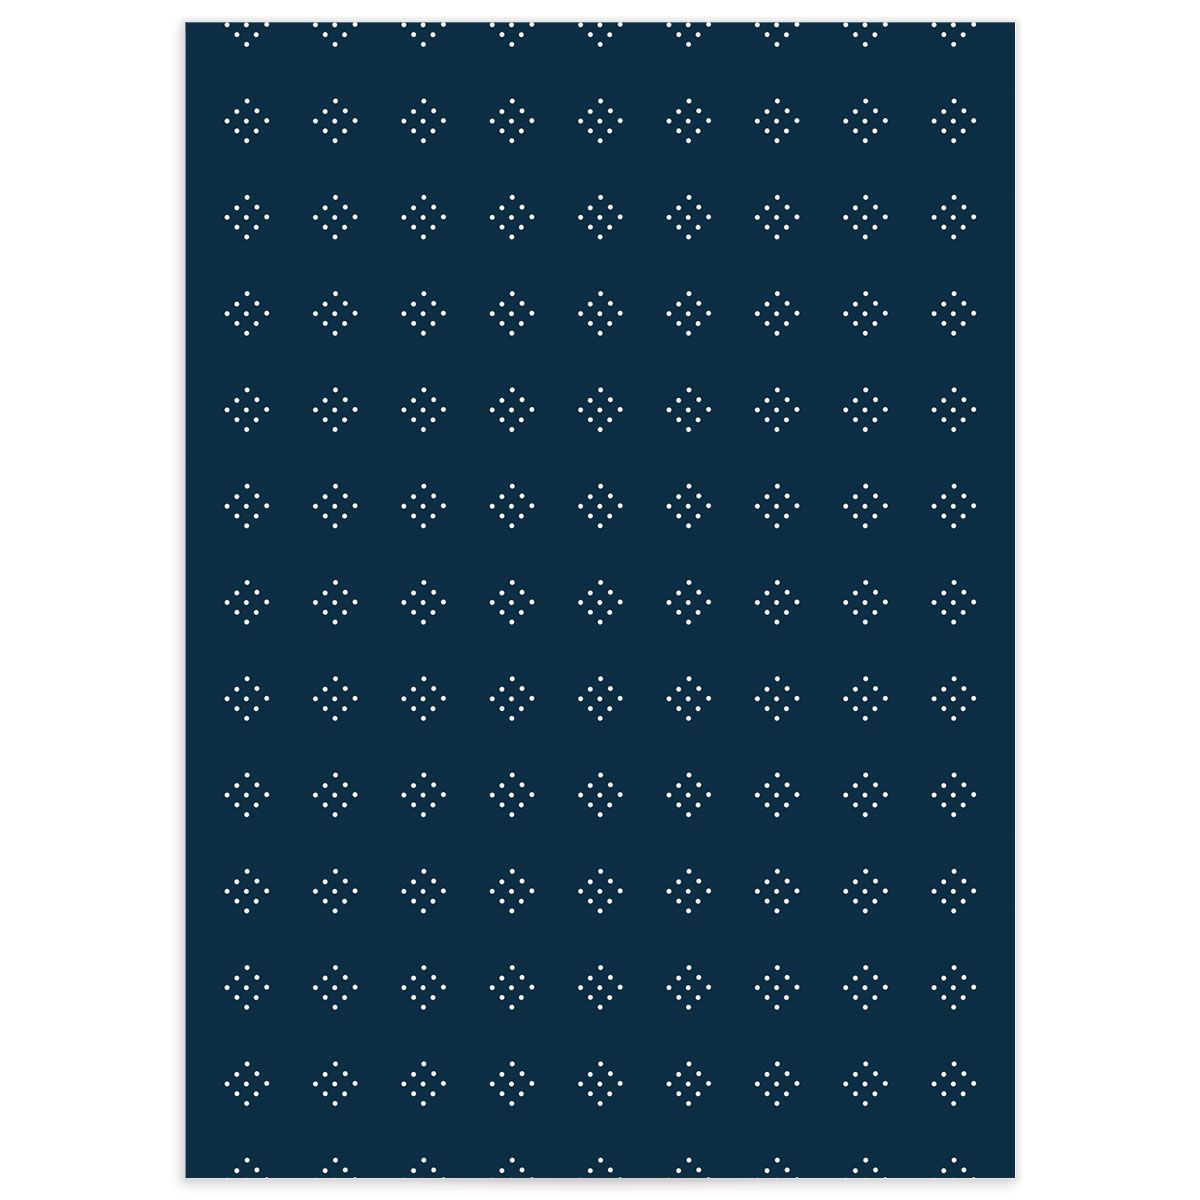 Formal Ampersand Enclosure Card back in navy